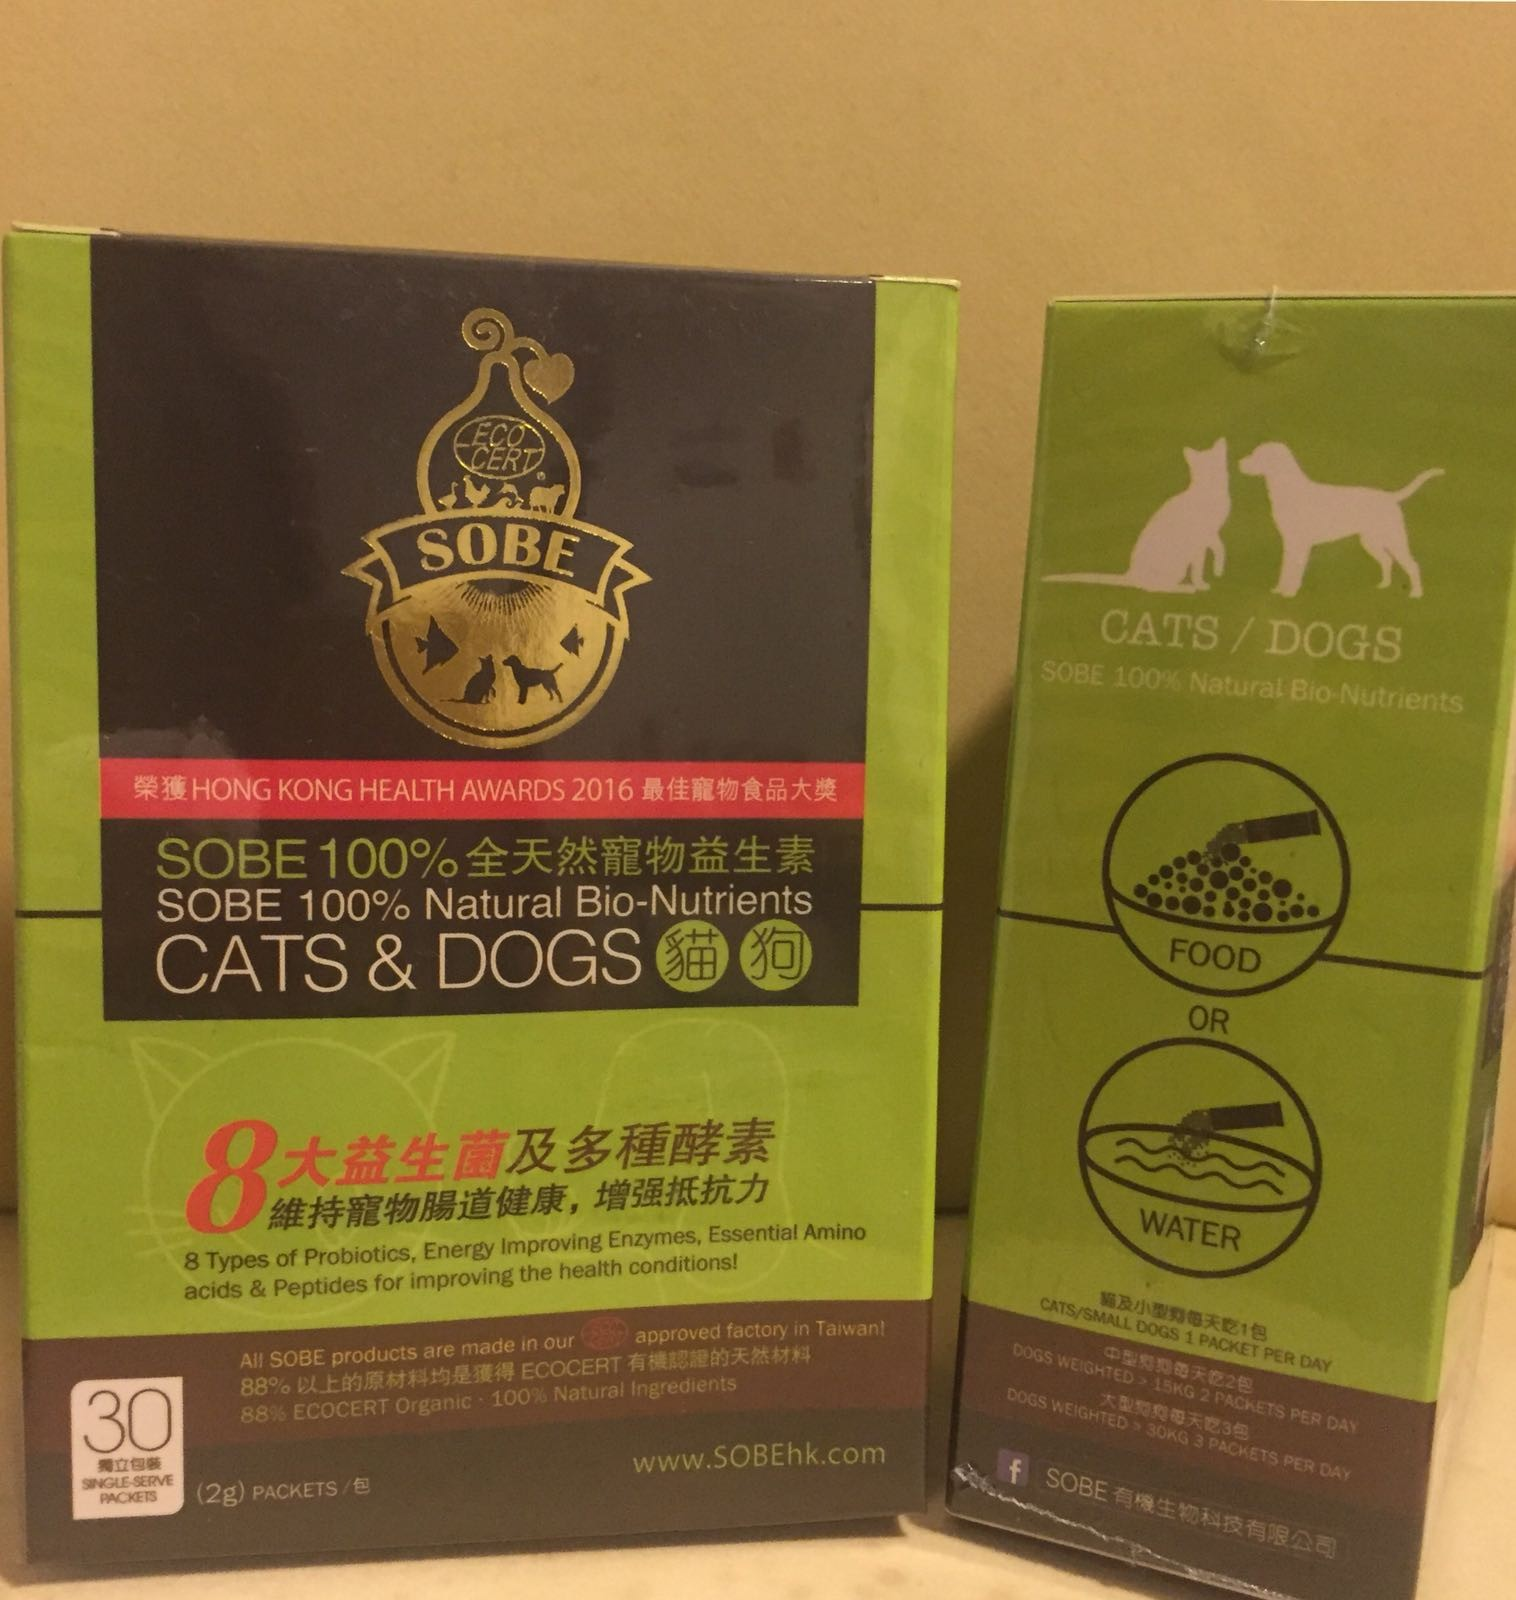 100% Natural Bio-Nutrients CATS & DOGS 60g全天然寵物益生菌–貓狗 (盒裝)